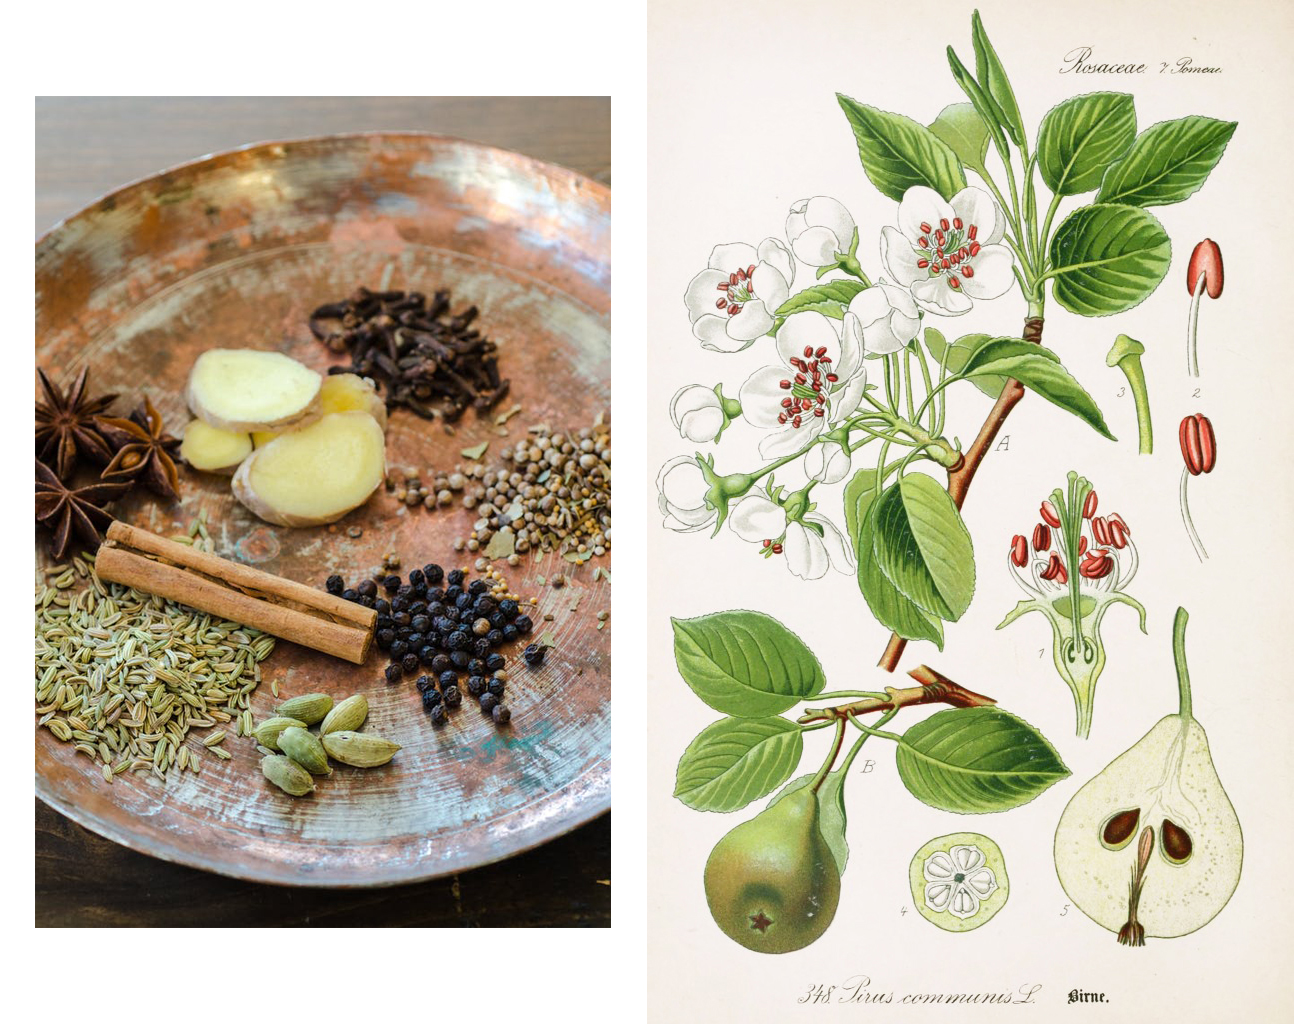 The image on the left is from  thekitchn.com . The botanical illustration on the right is of the Common Pear, or Pyrus Communis,from  Flora of Germany , circa 1903.